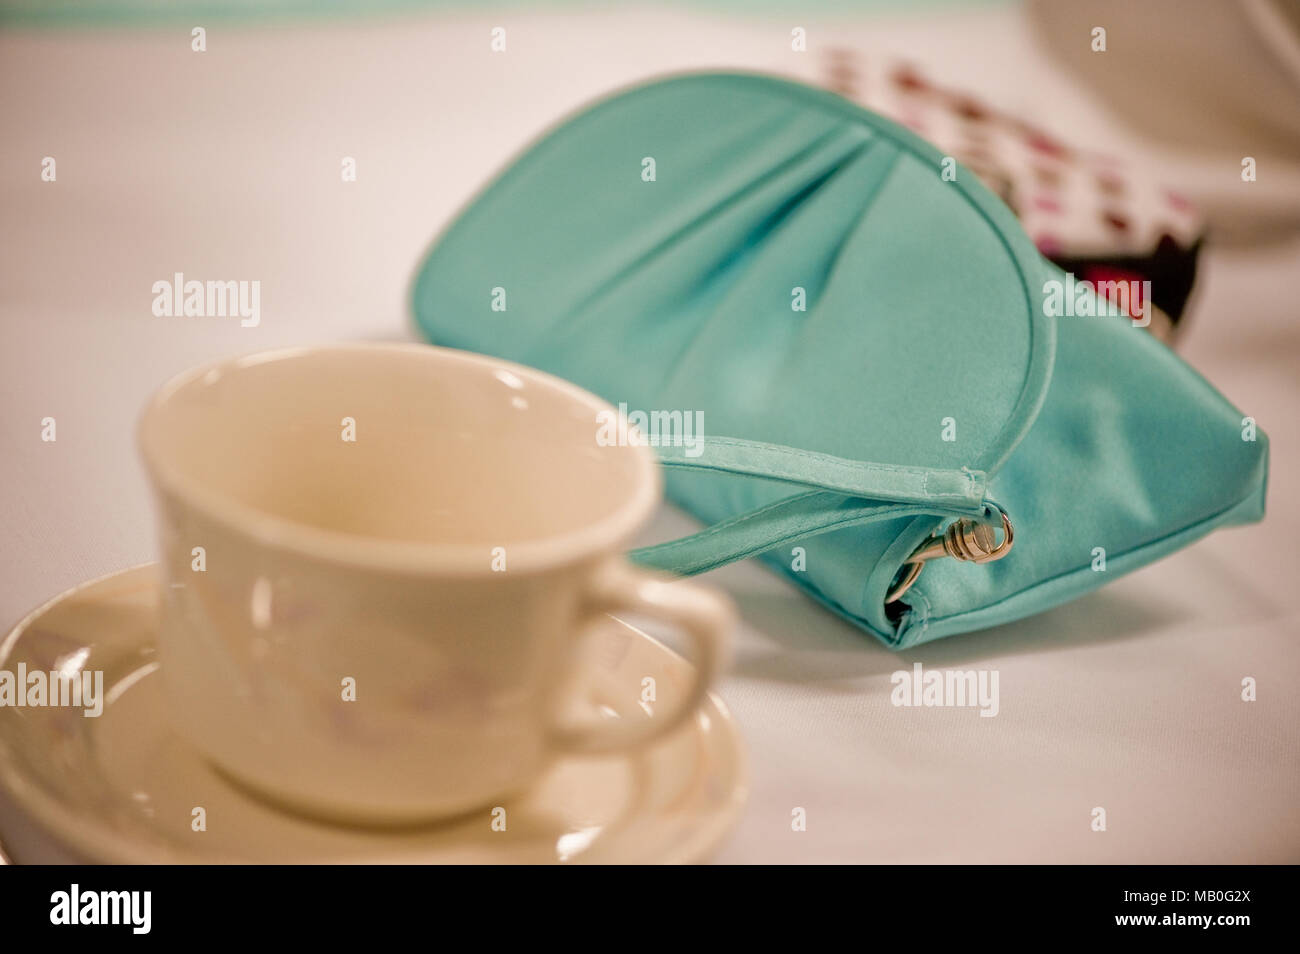 A small teal colored purse next to an empty coffee cup on a table - Stock Image